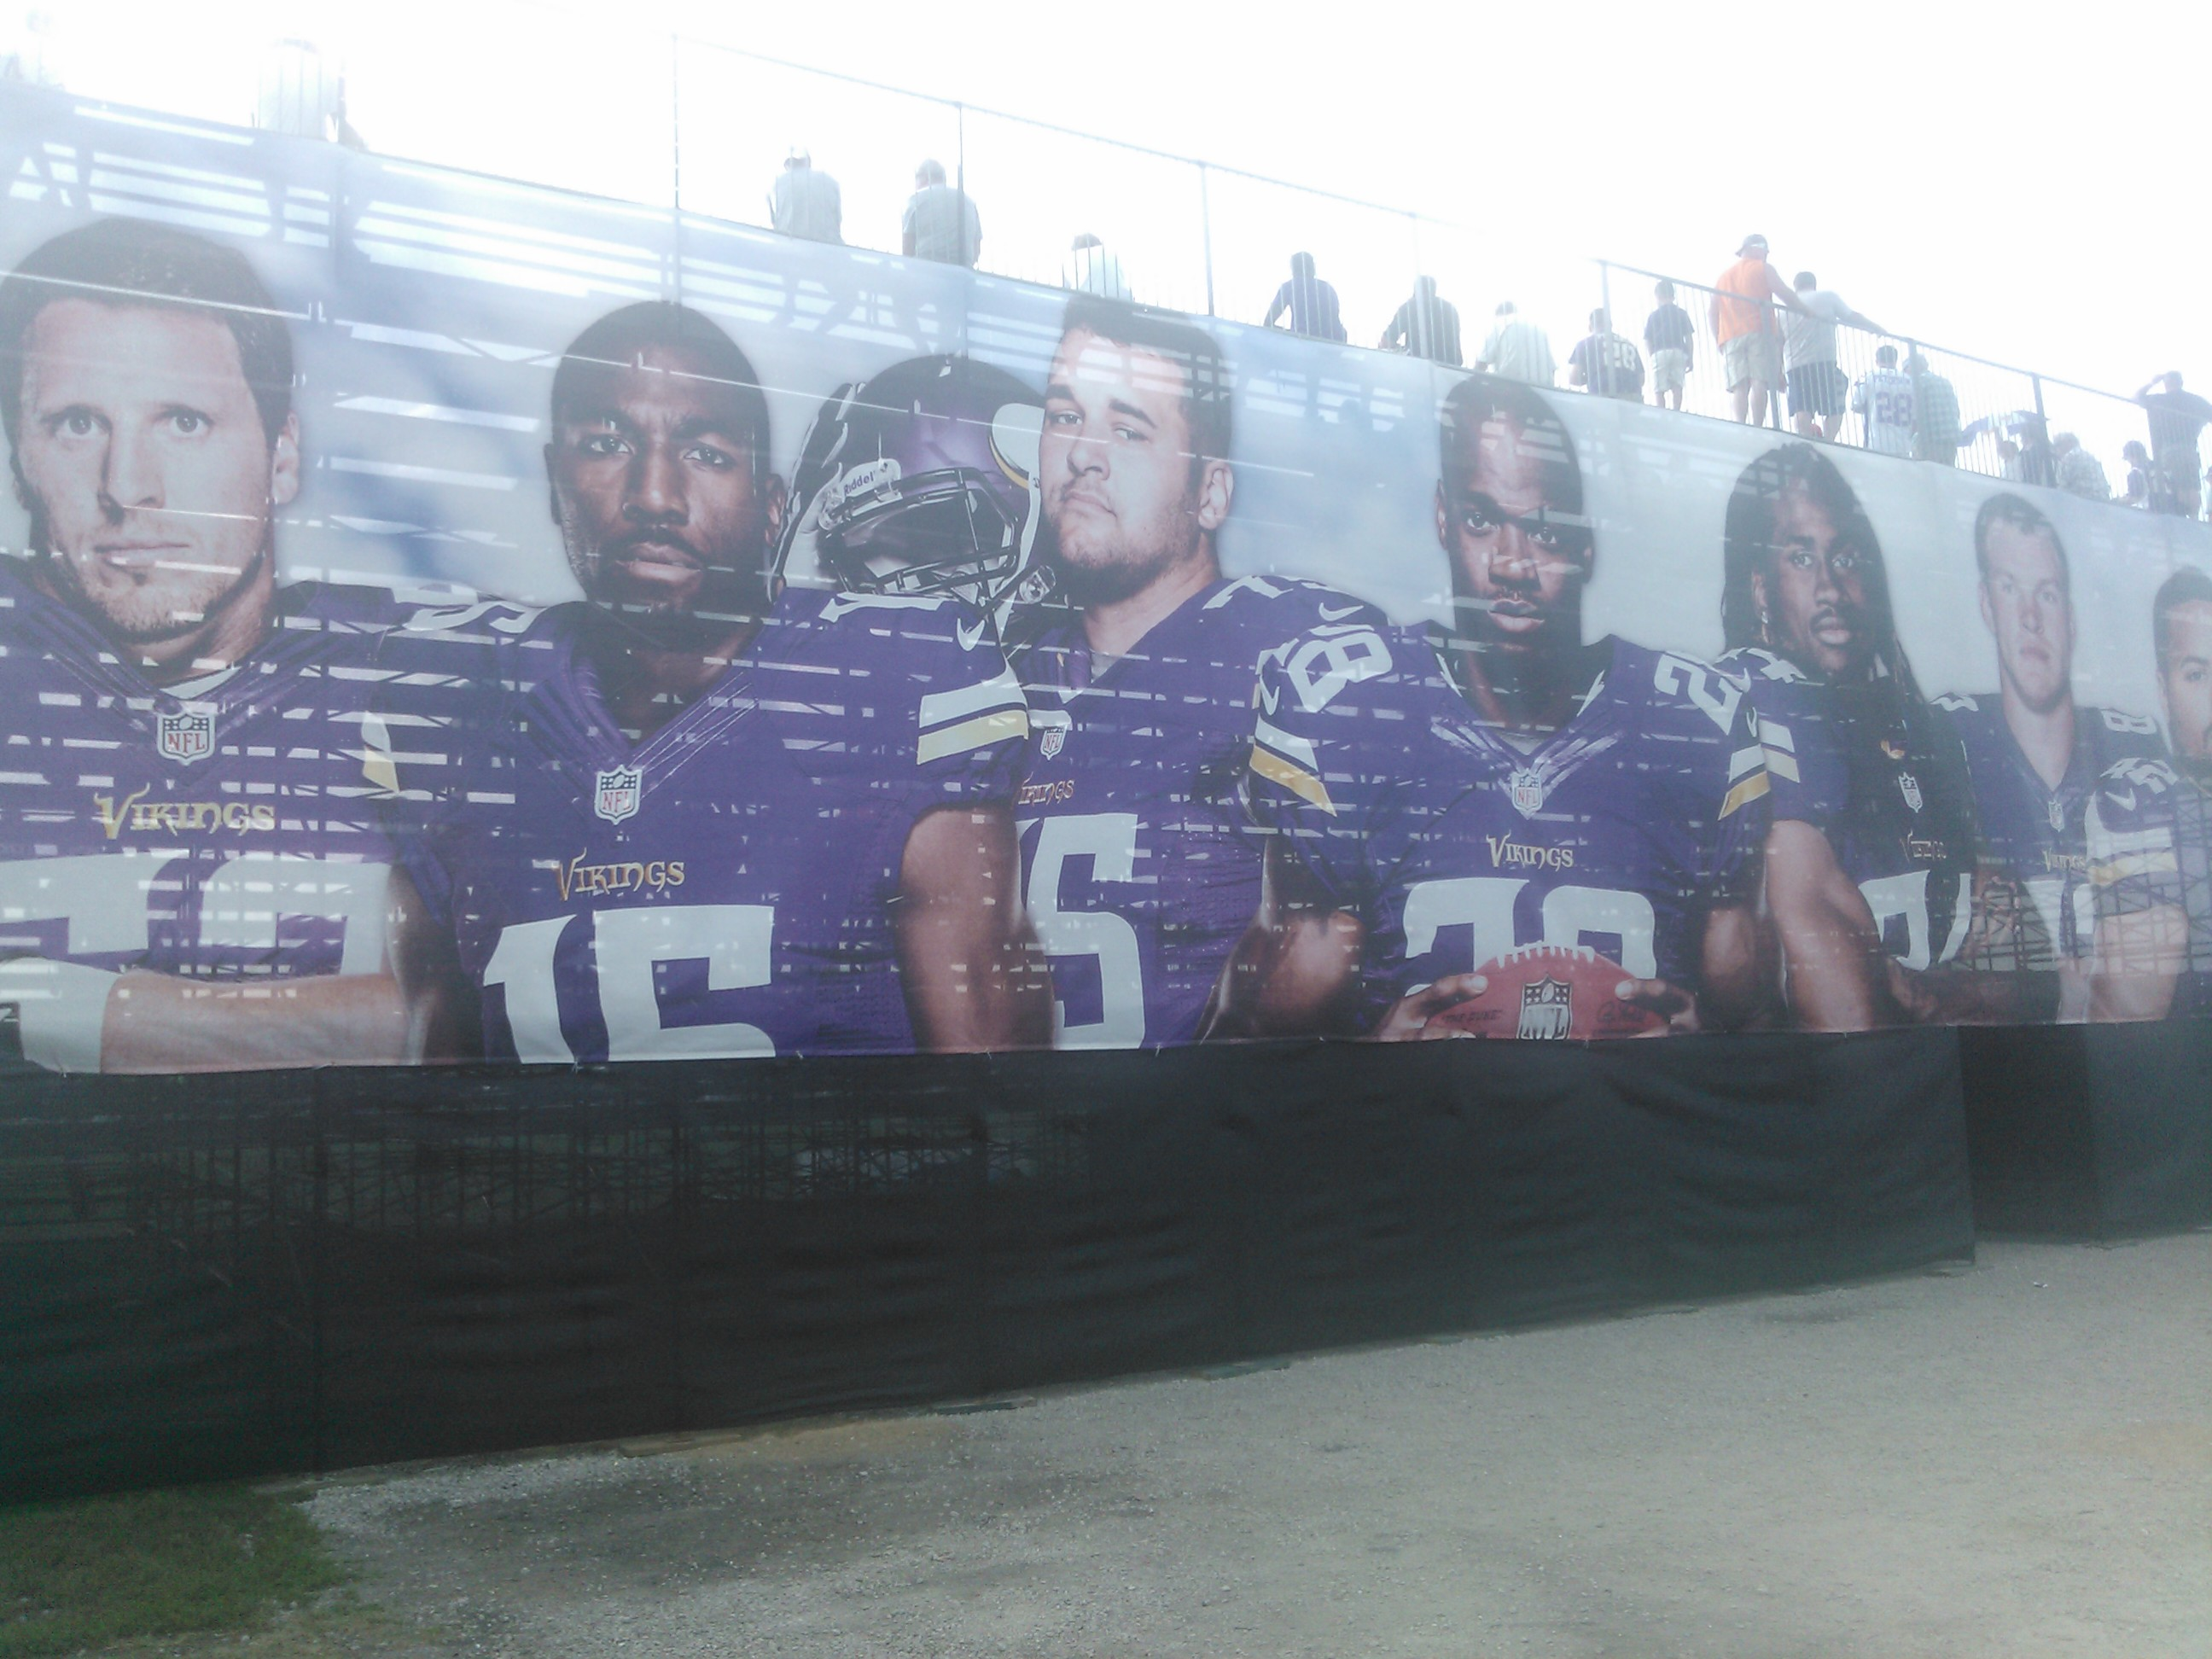 Big Banner at Vikings Training Camp (Erik Bergs)